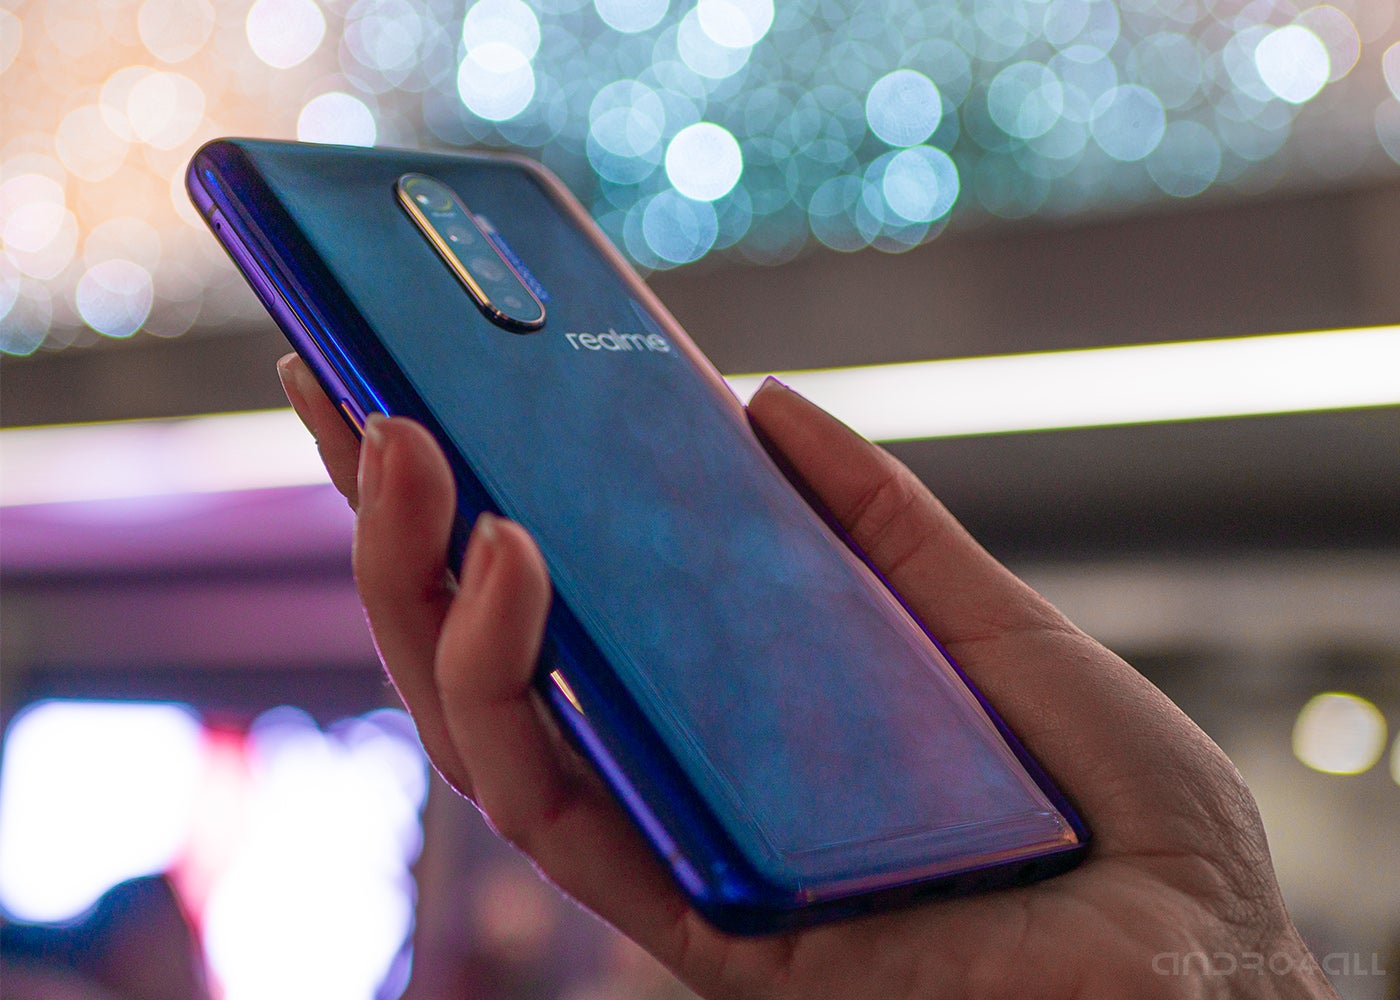 Realme X2 Pro in the hand, rear